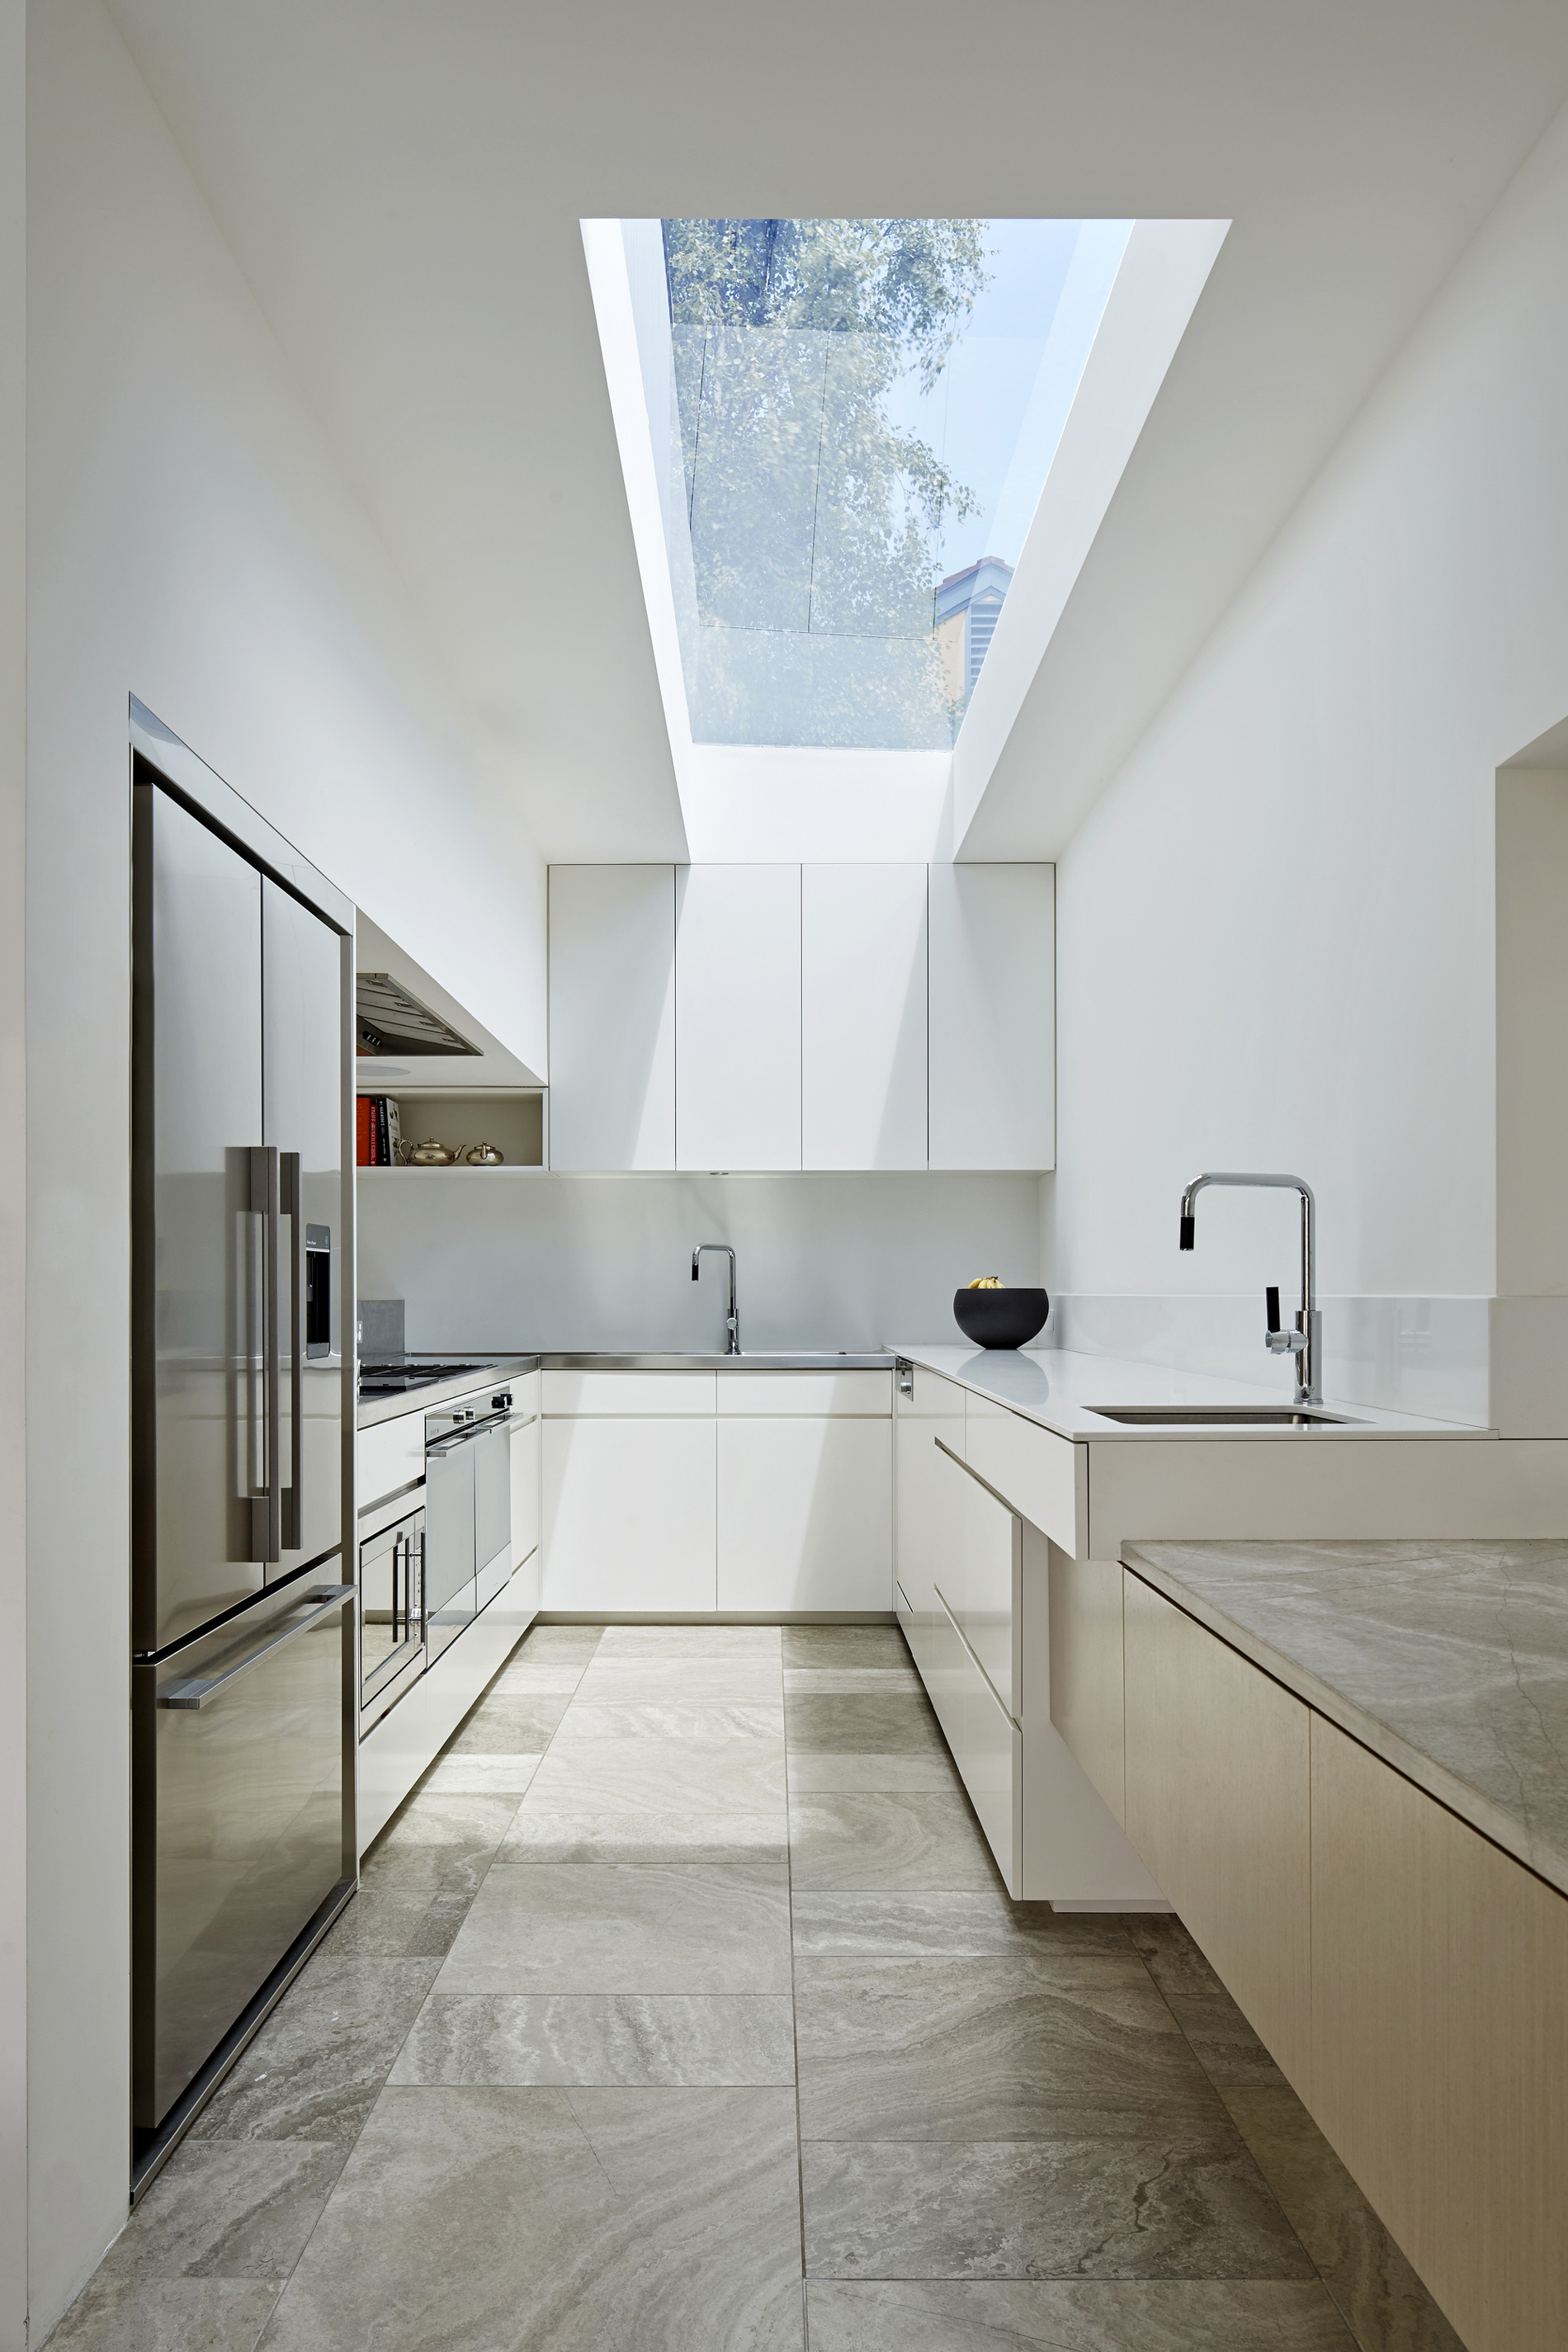 House 3 / Coy Yiontis Architects (15)